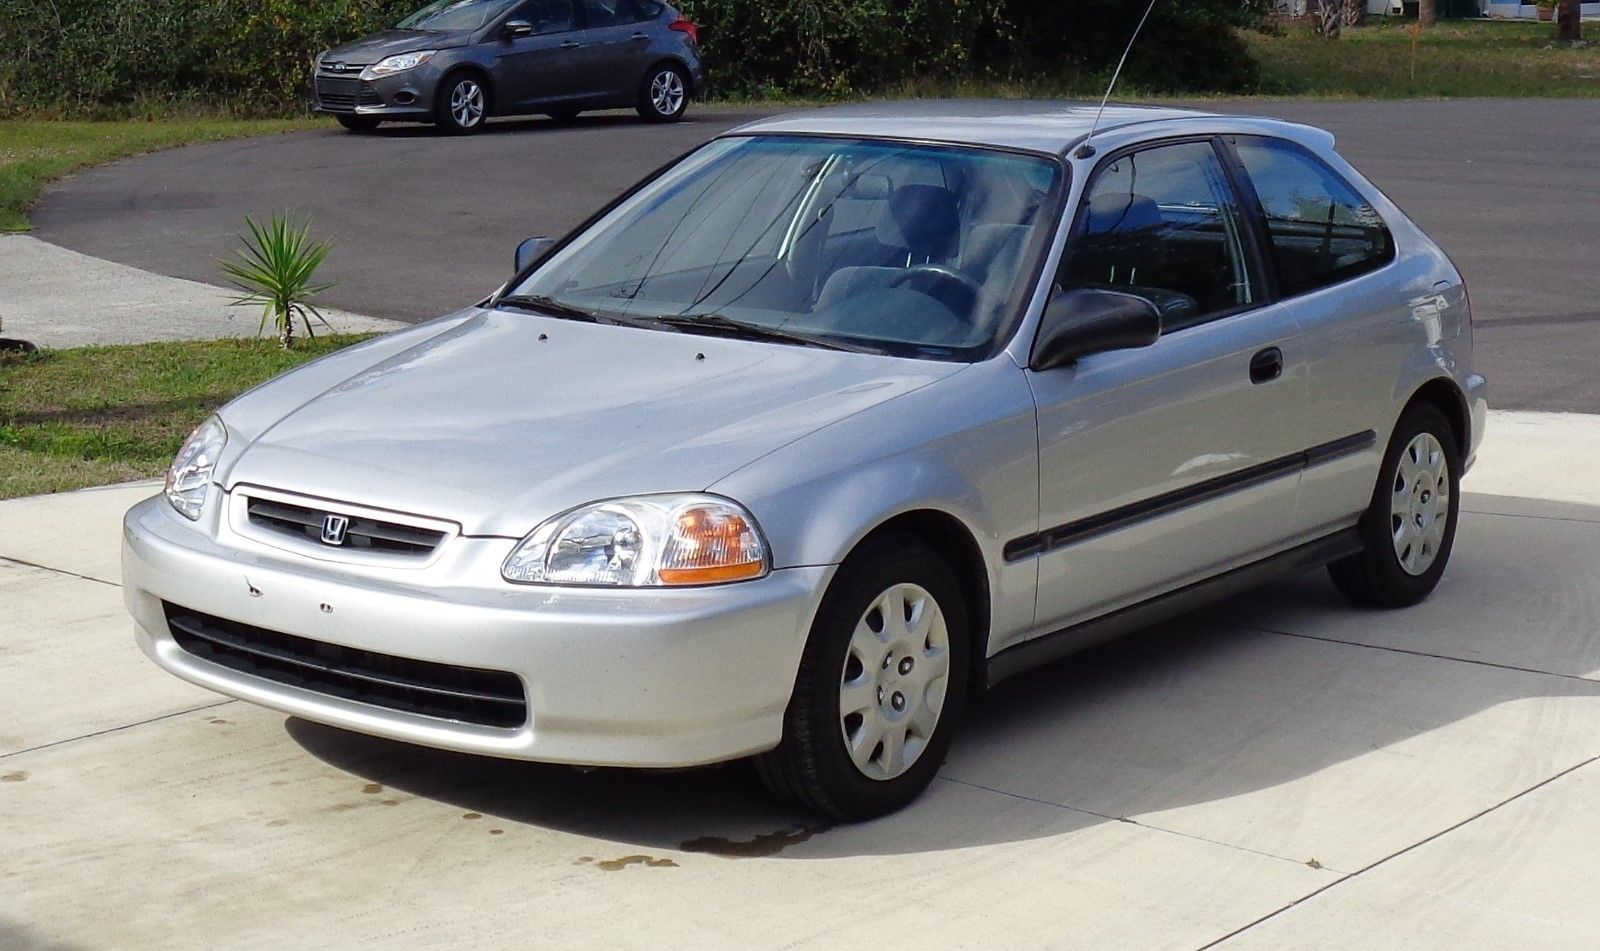 Is The Honda Civic A Good Used Car